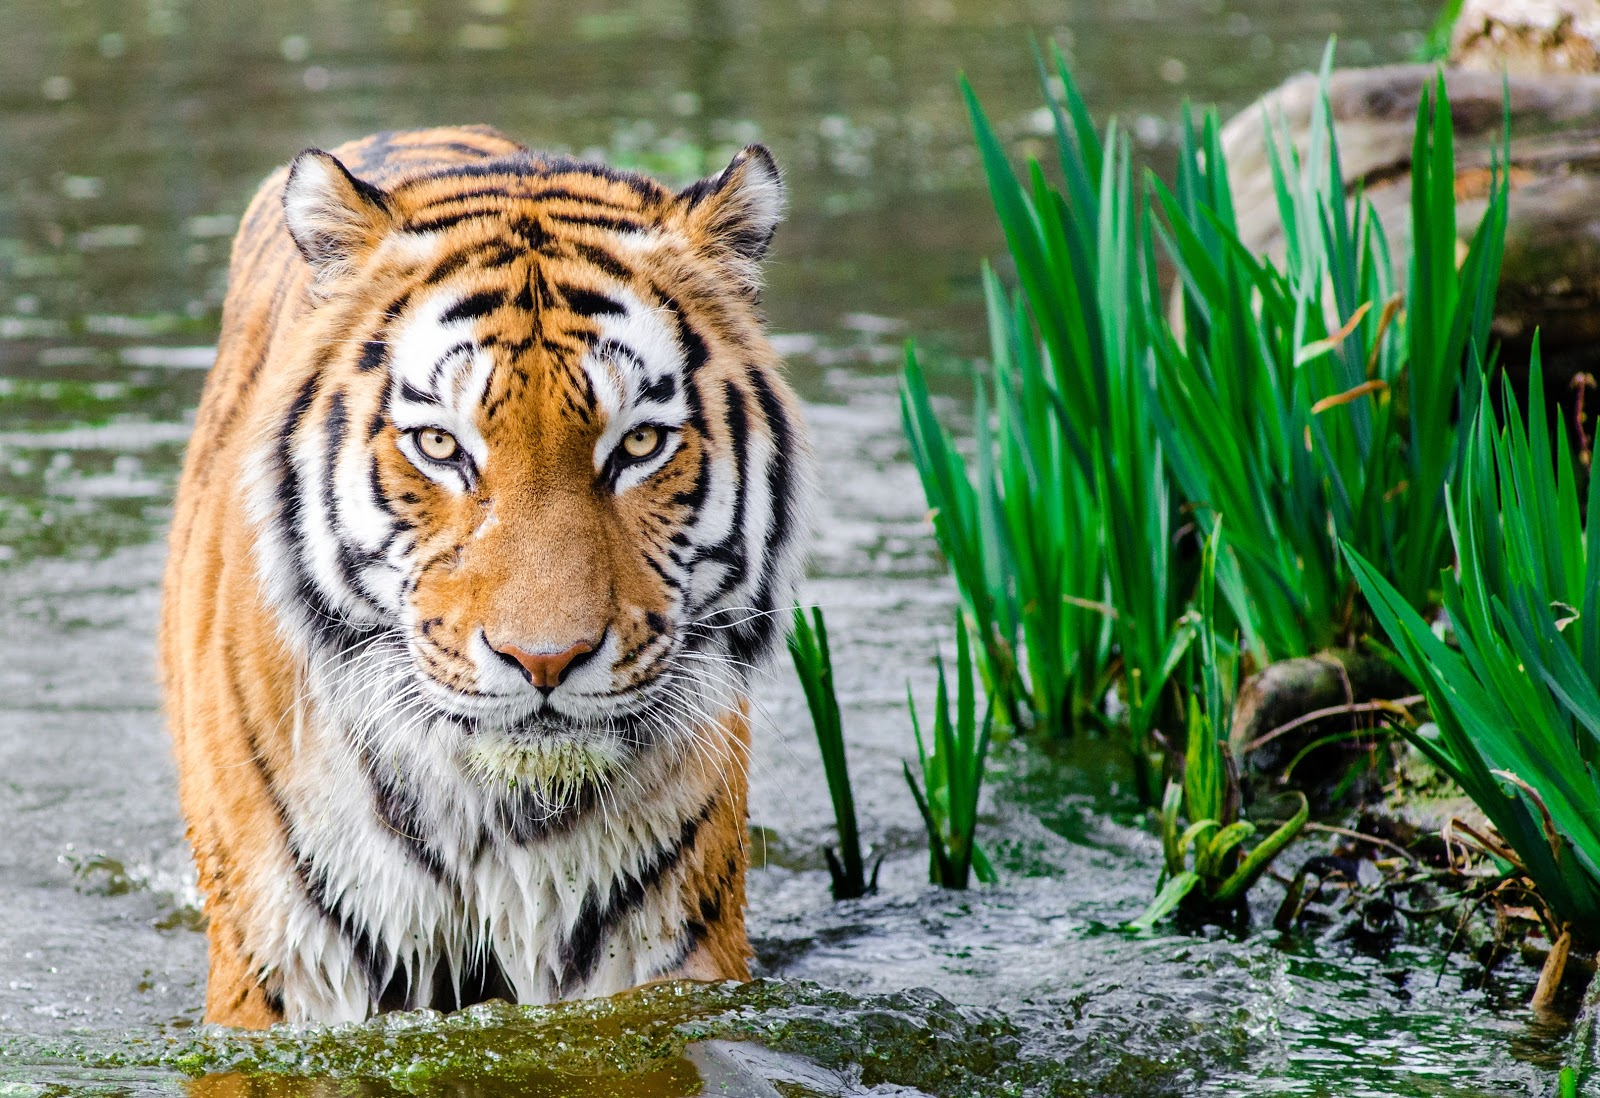 bengal-tiger-half-soak-body-on-water-during-daytime-pictures